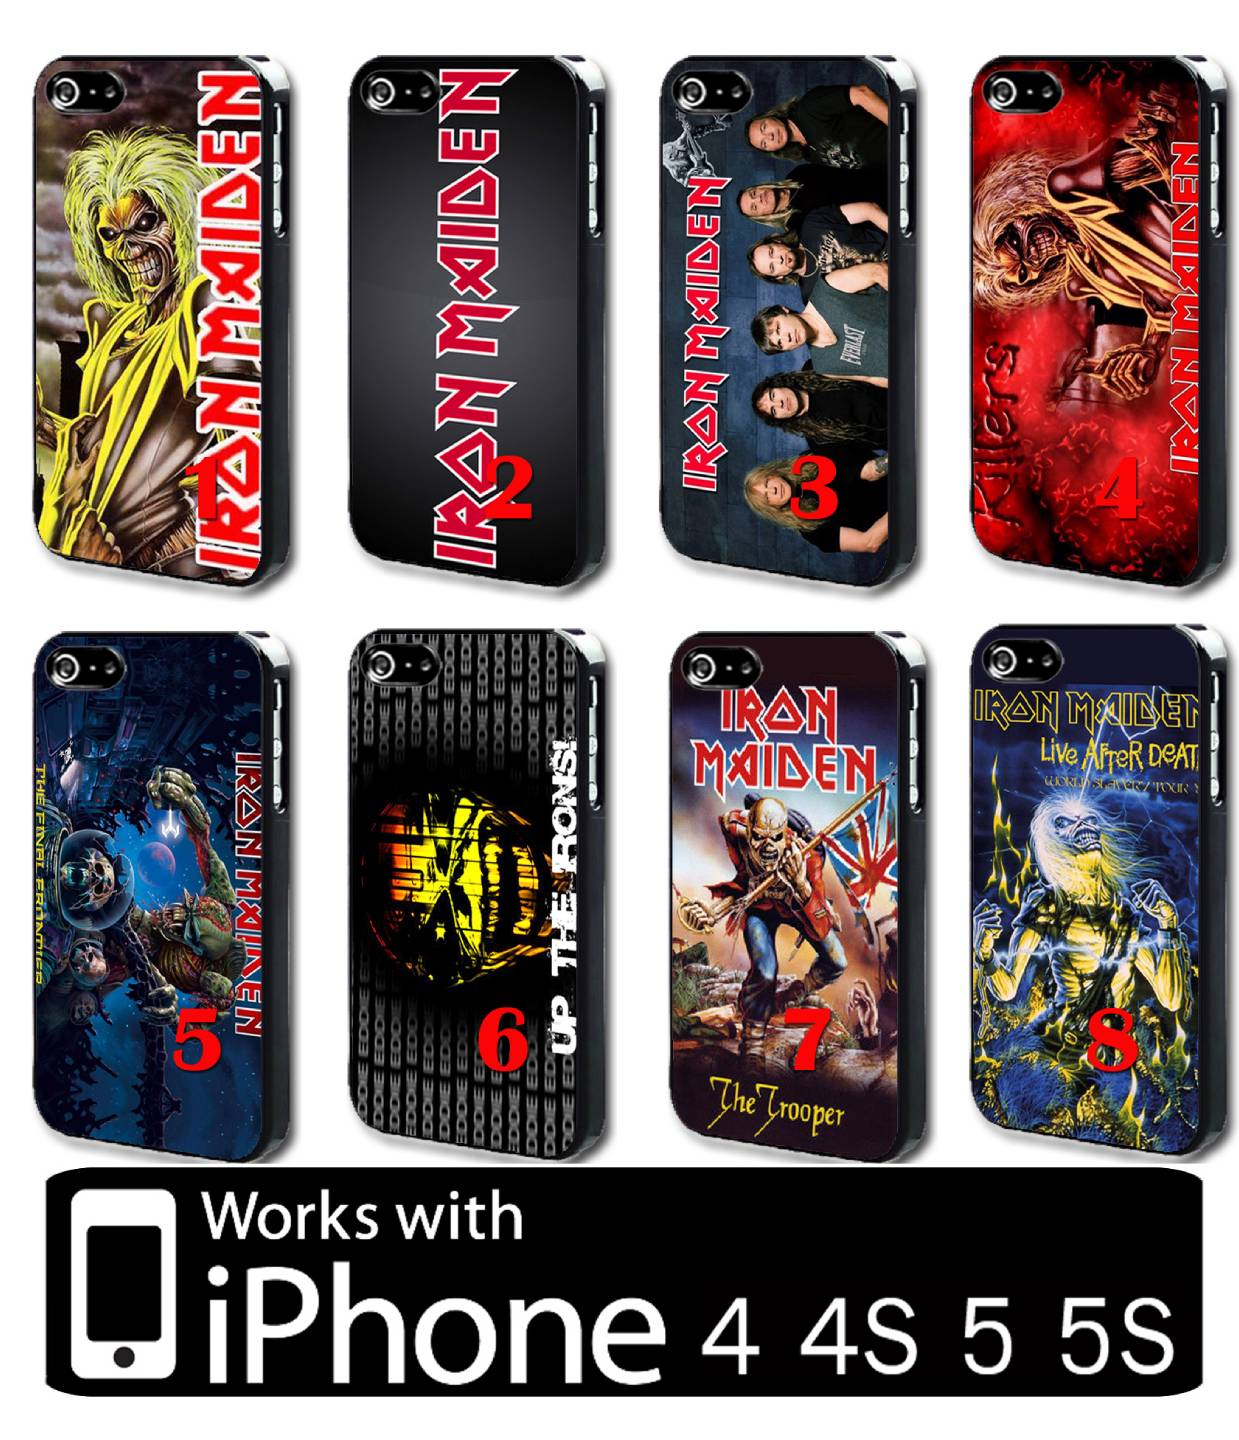 Iron Maiden IPhone 4 4s 5 5s Hard Case Cover UK Heavy